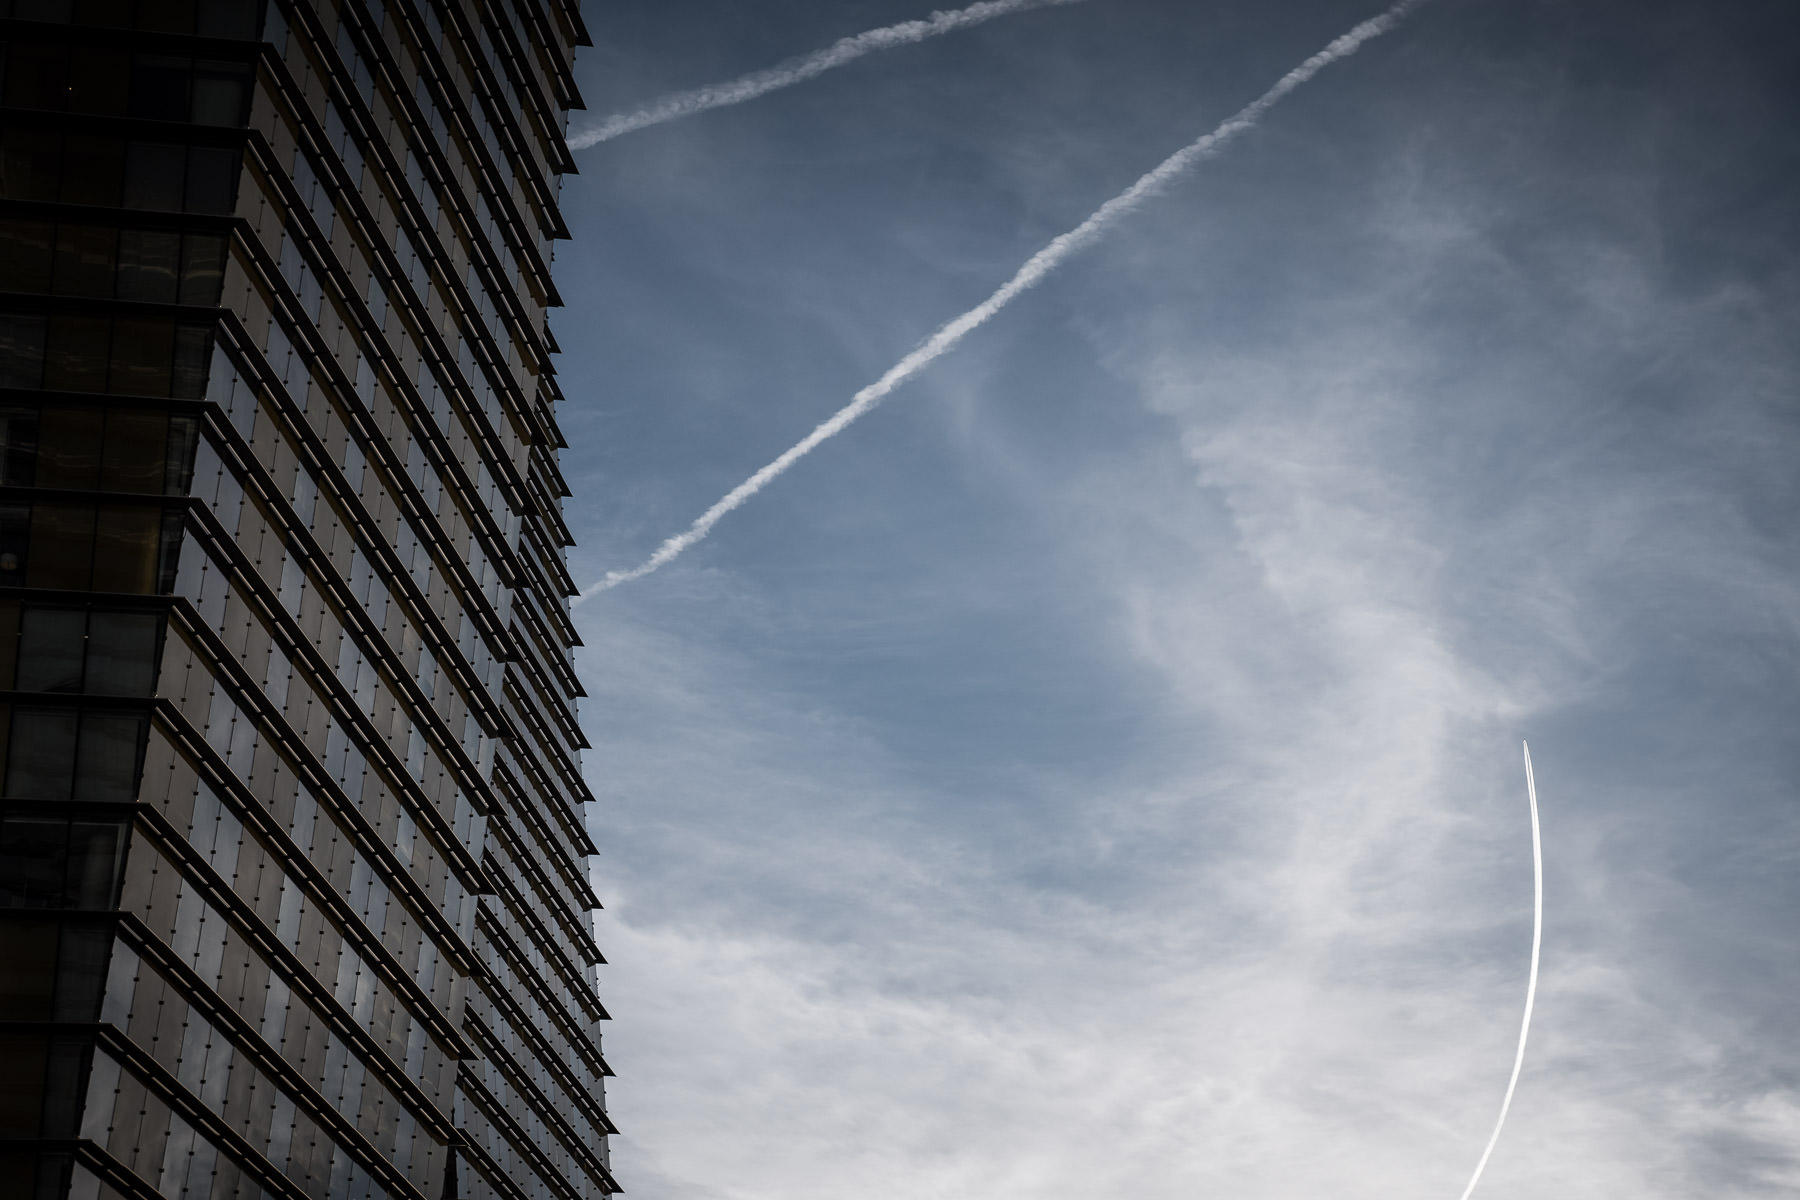 Jet contrails slice through the sky above Las Vegas' Veer Towers.